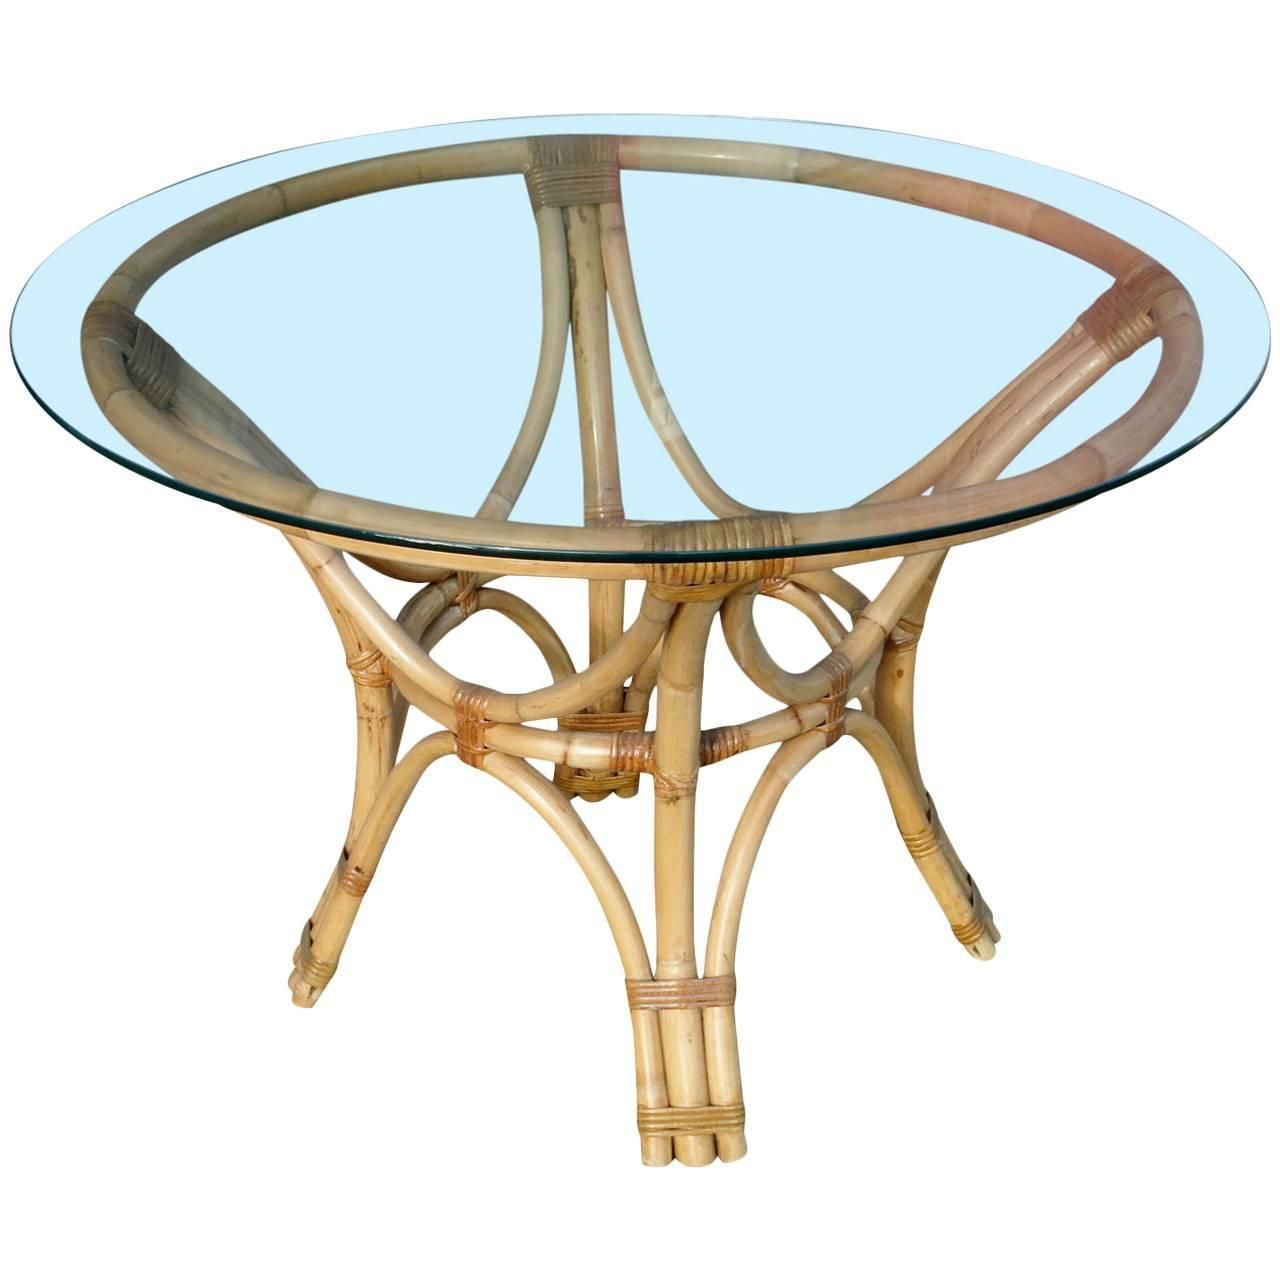 Groovy Restored Rattan Bentwood Dining Table With Round Glass Top Gmtry Best Dining Table And Chair Ideas Images Gmtryco